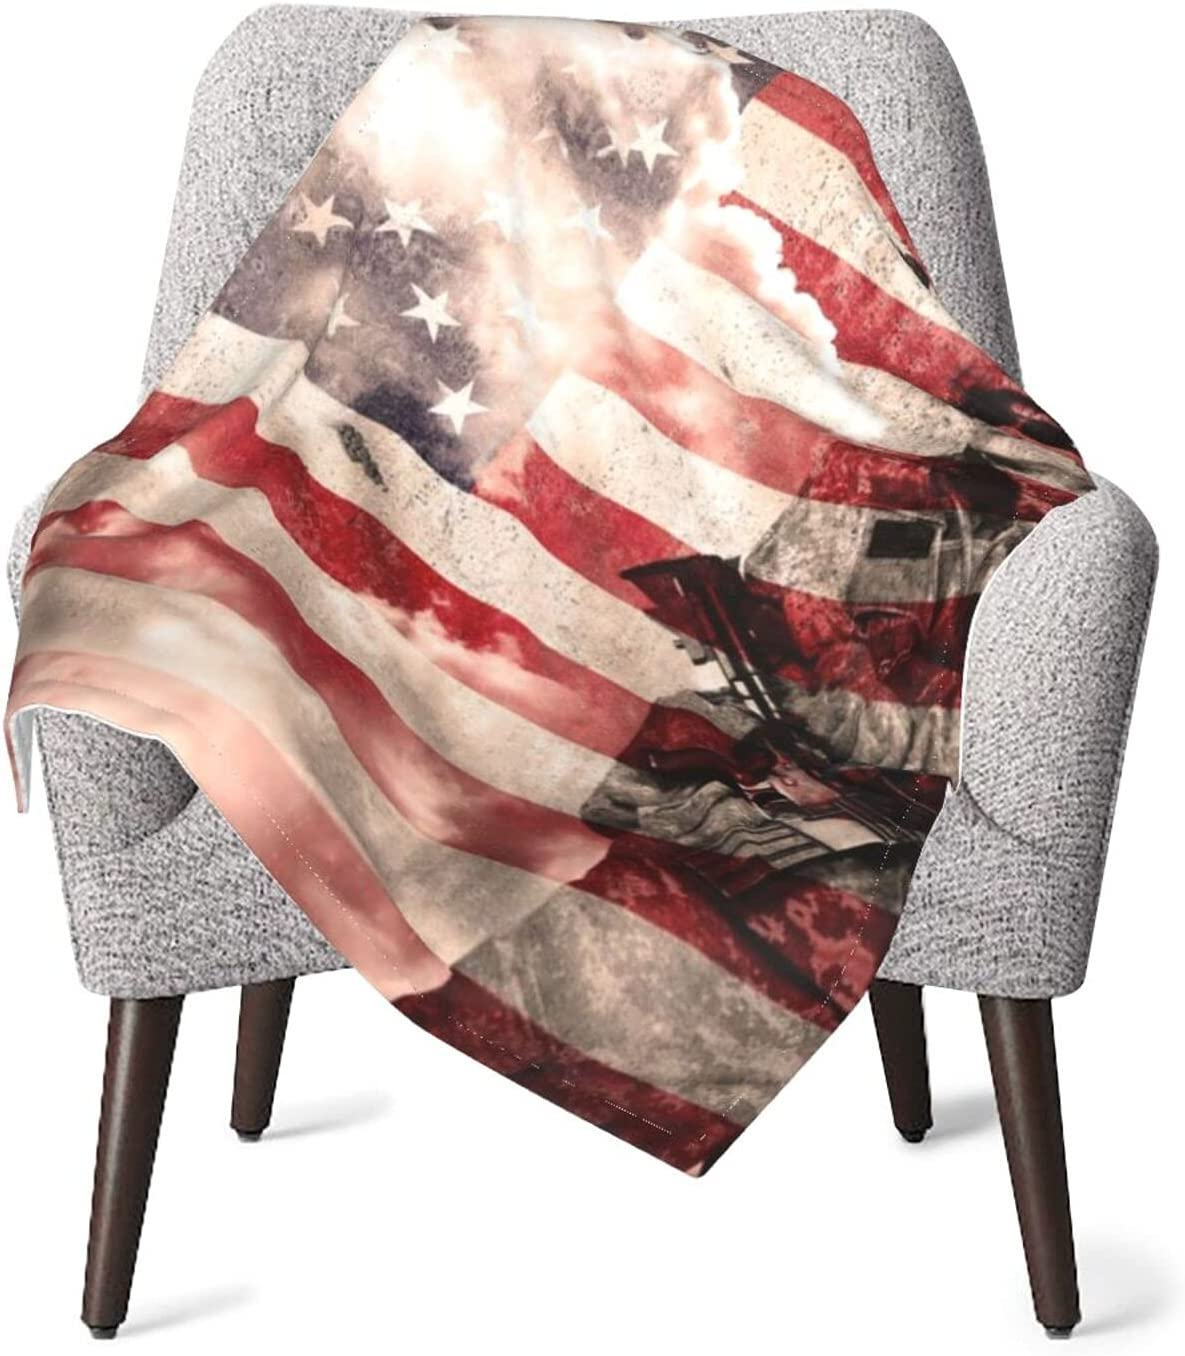 OFFer Baby Blanket Soldier with Rifle On Bed Inventory cleanup selling sale Blankets Nursery Us Flag